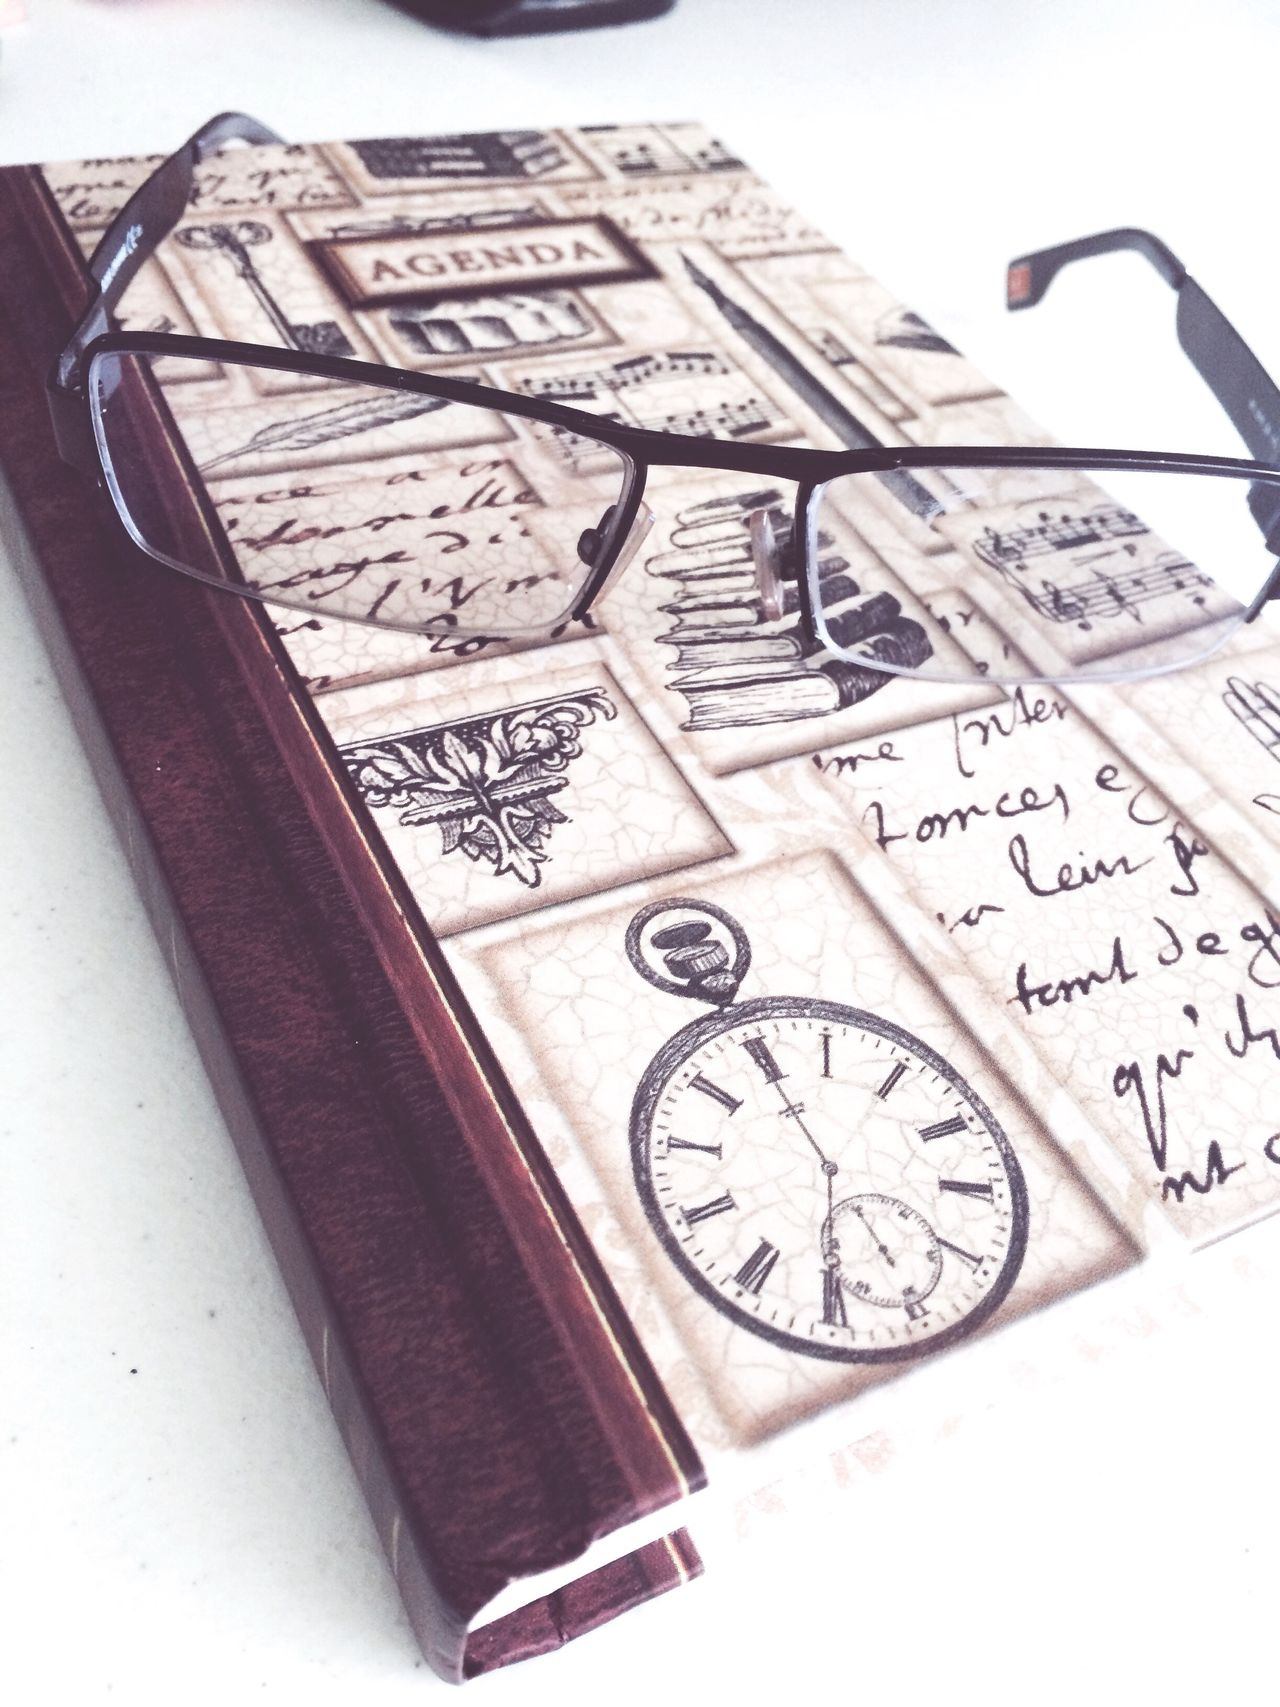 Book Books ♥ Clock Day Diary Glasses Minute Hand Time